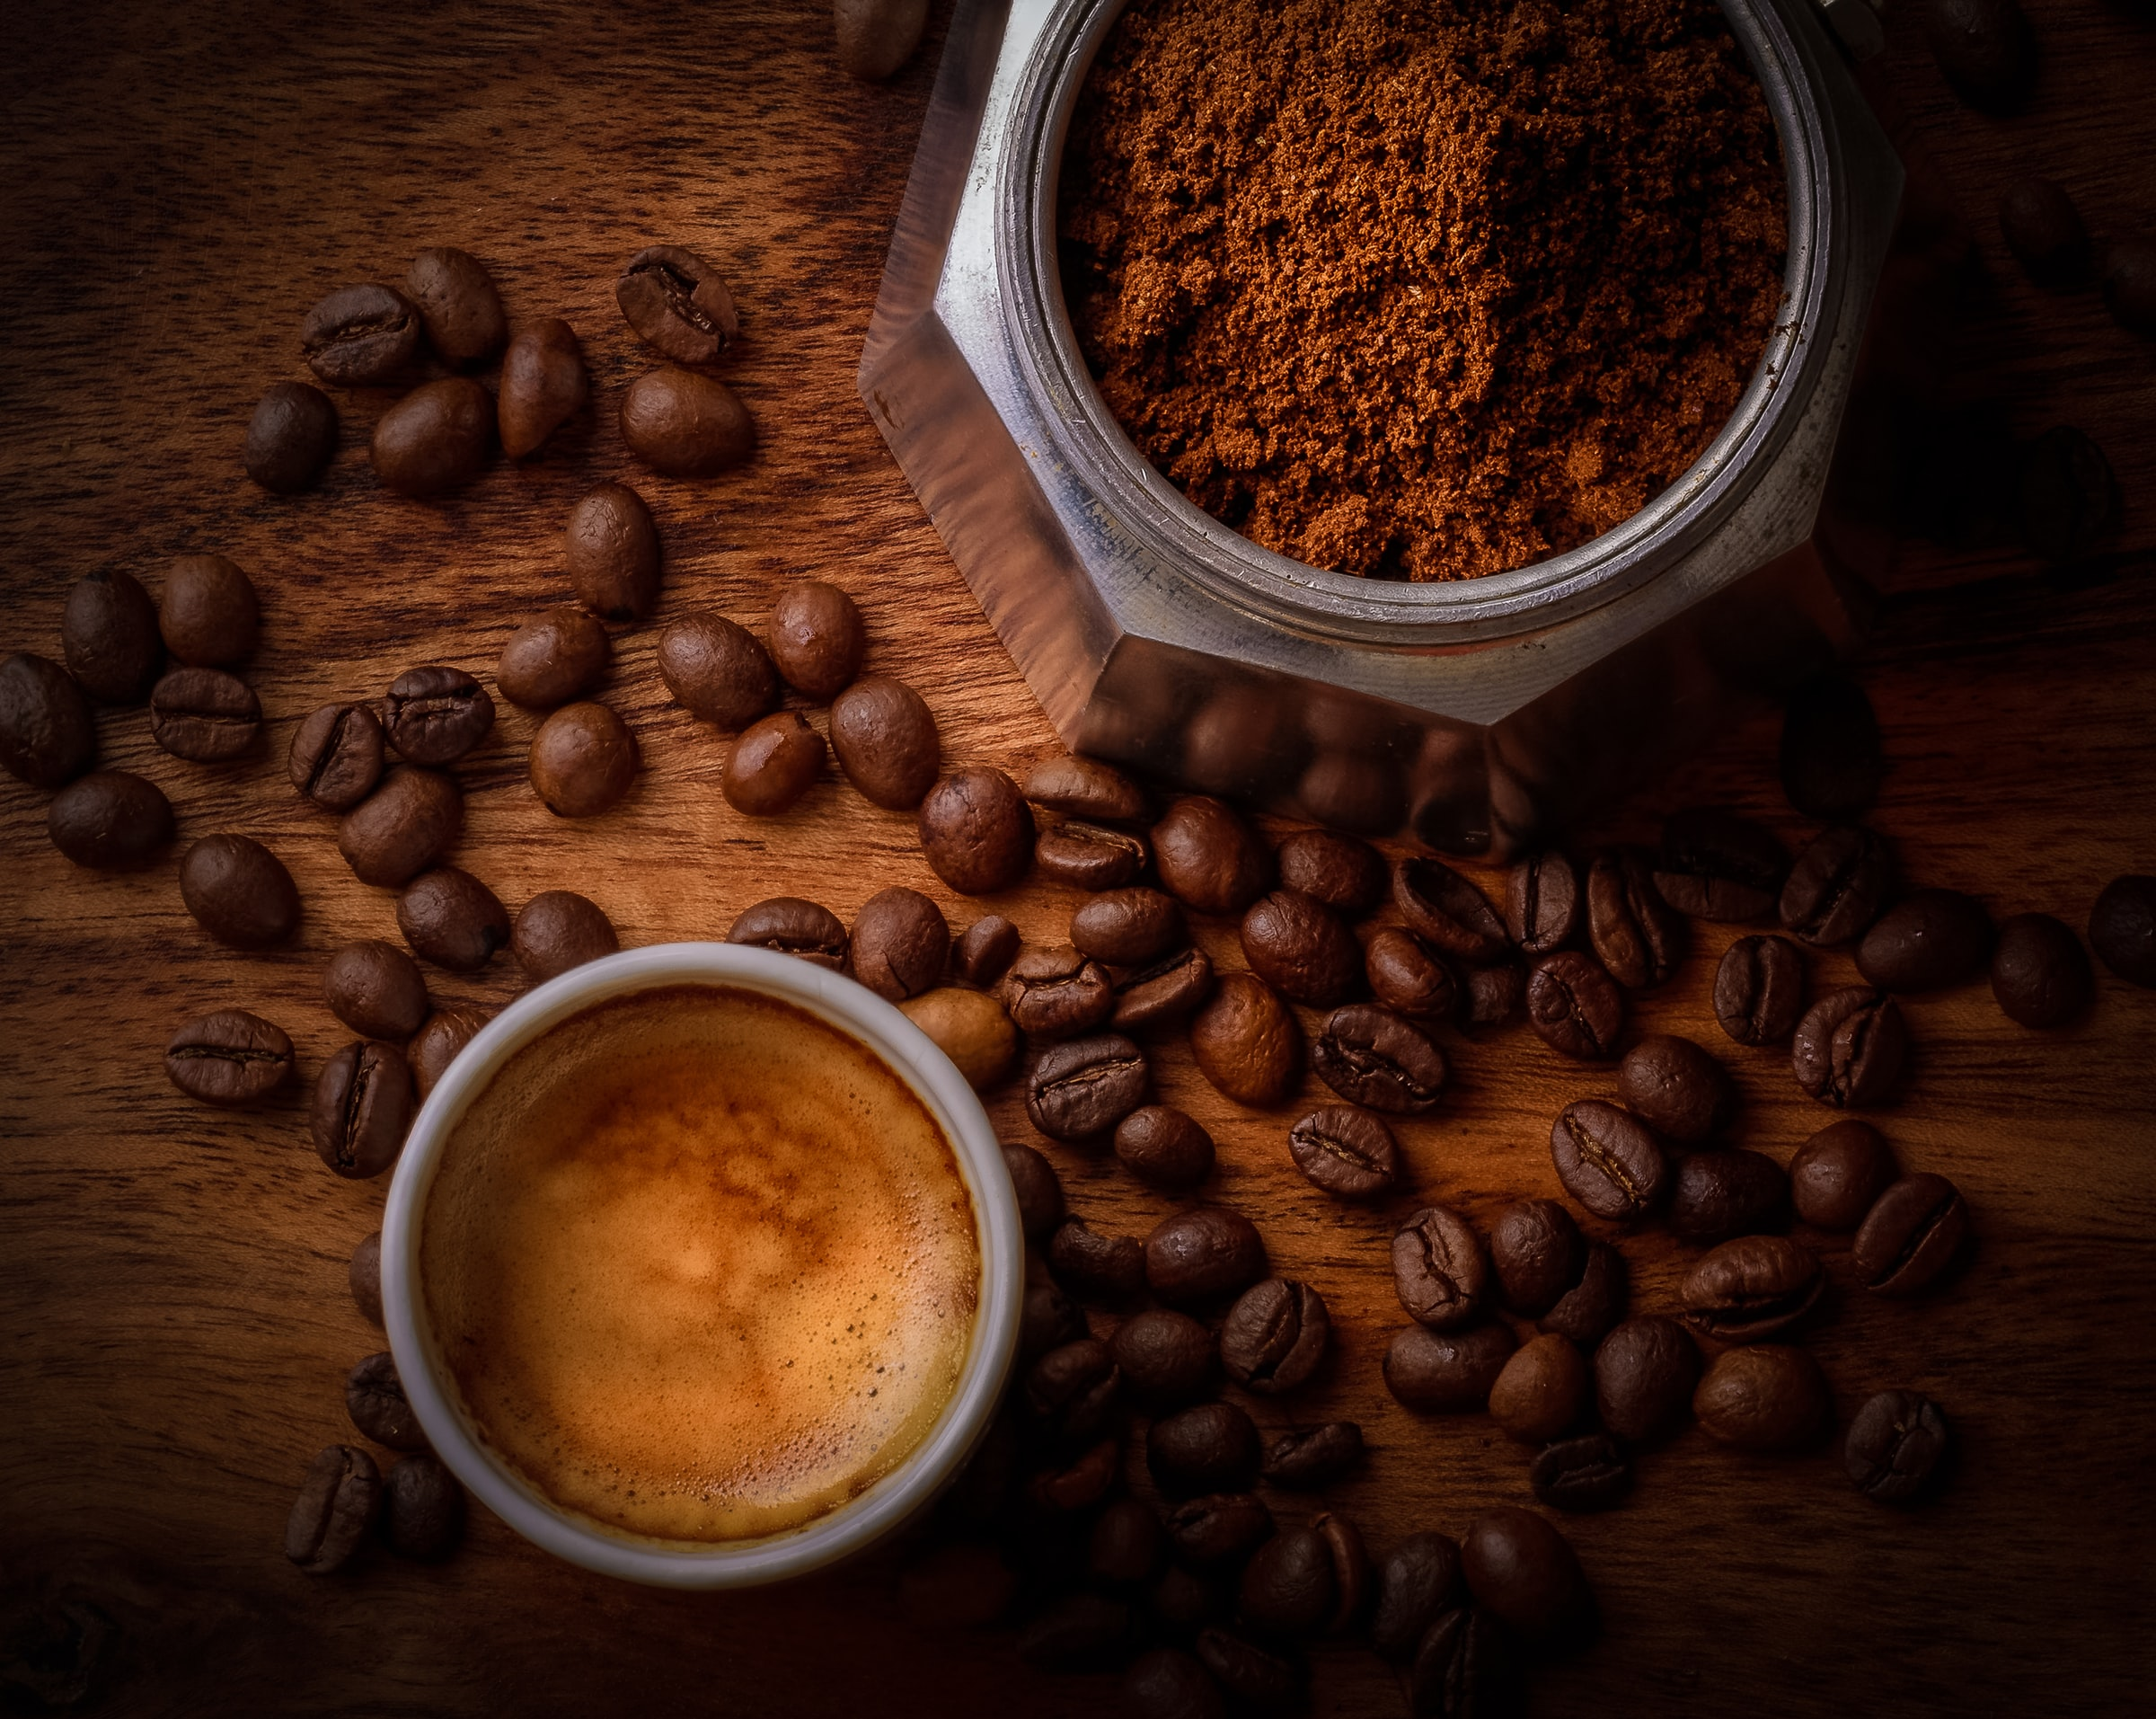 Cup of espresso next to an espresso pot filled with ground coffee, surrounded by whole roasted coffee beans.